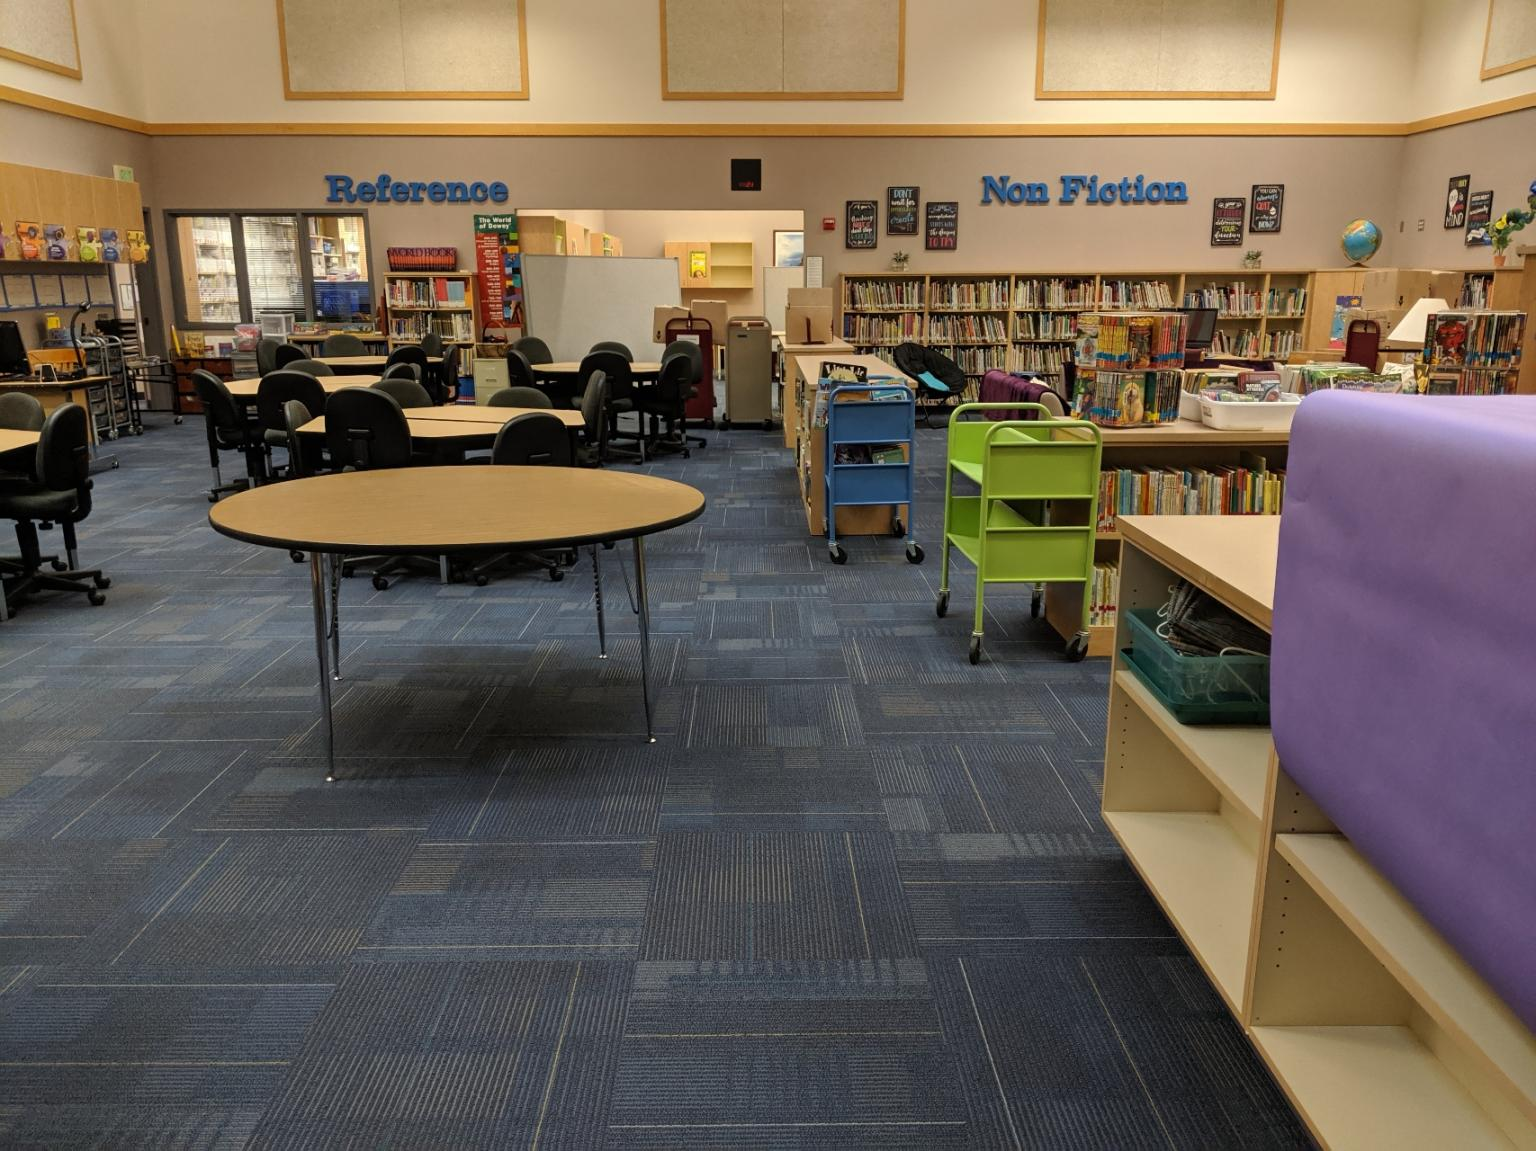 Washington Flooring Project: Northern Heights Elementary School